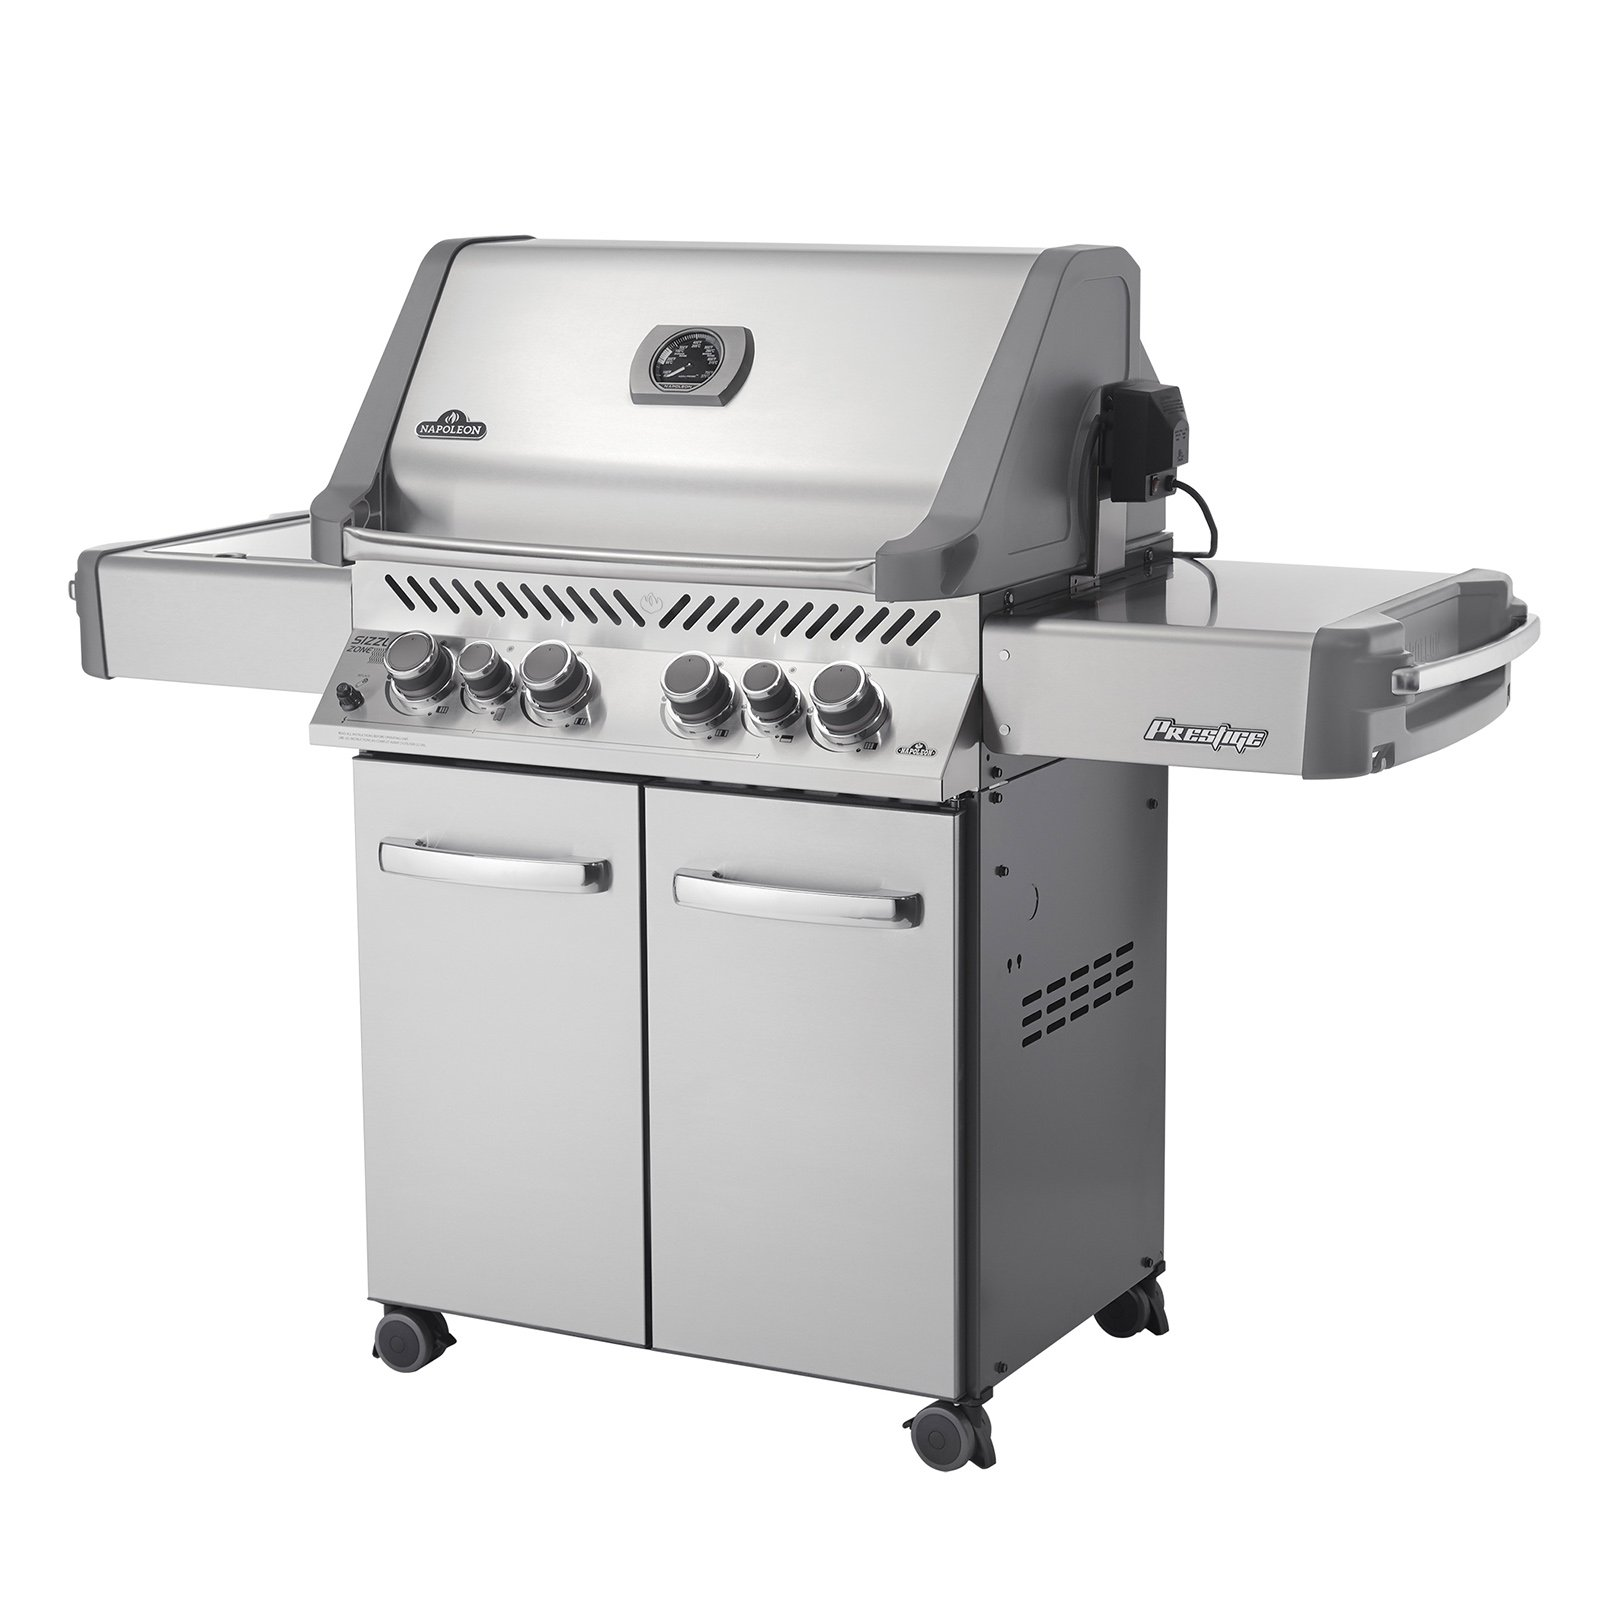 Napoleon Prestige P500RSIB Grill with Rear Side Infrared Burner and Stainless Steel Doors